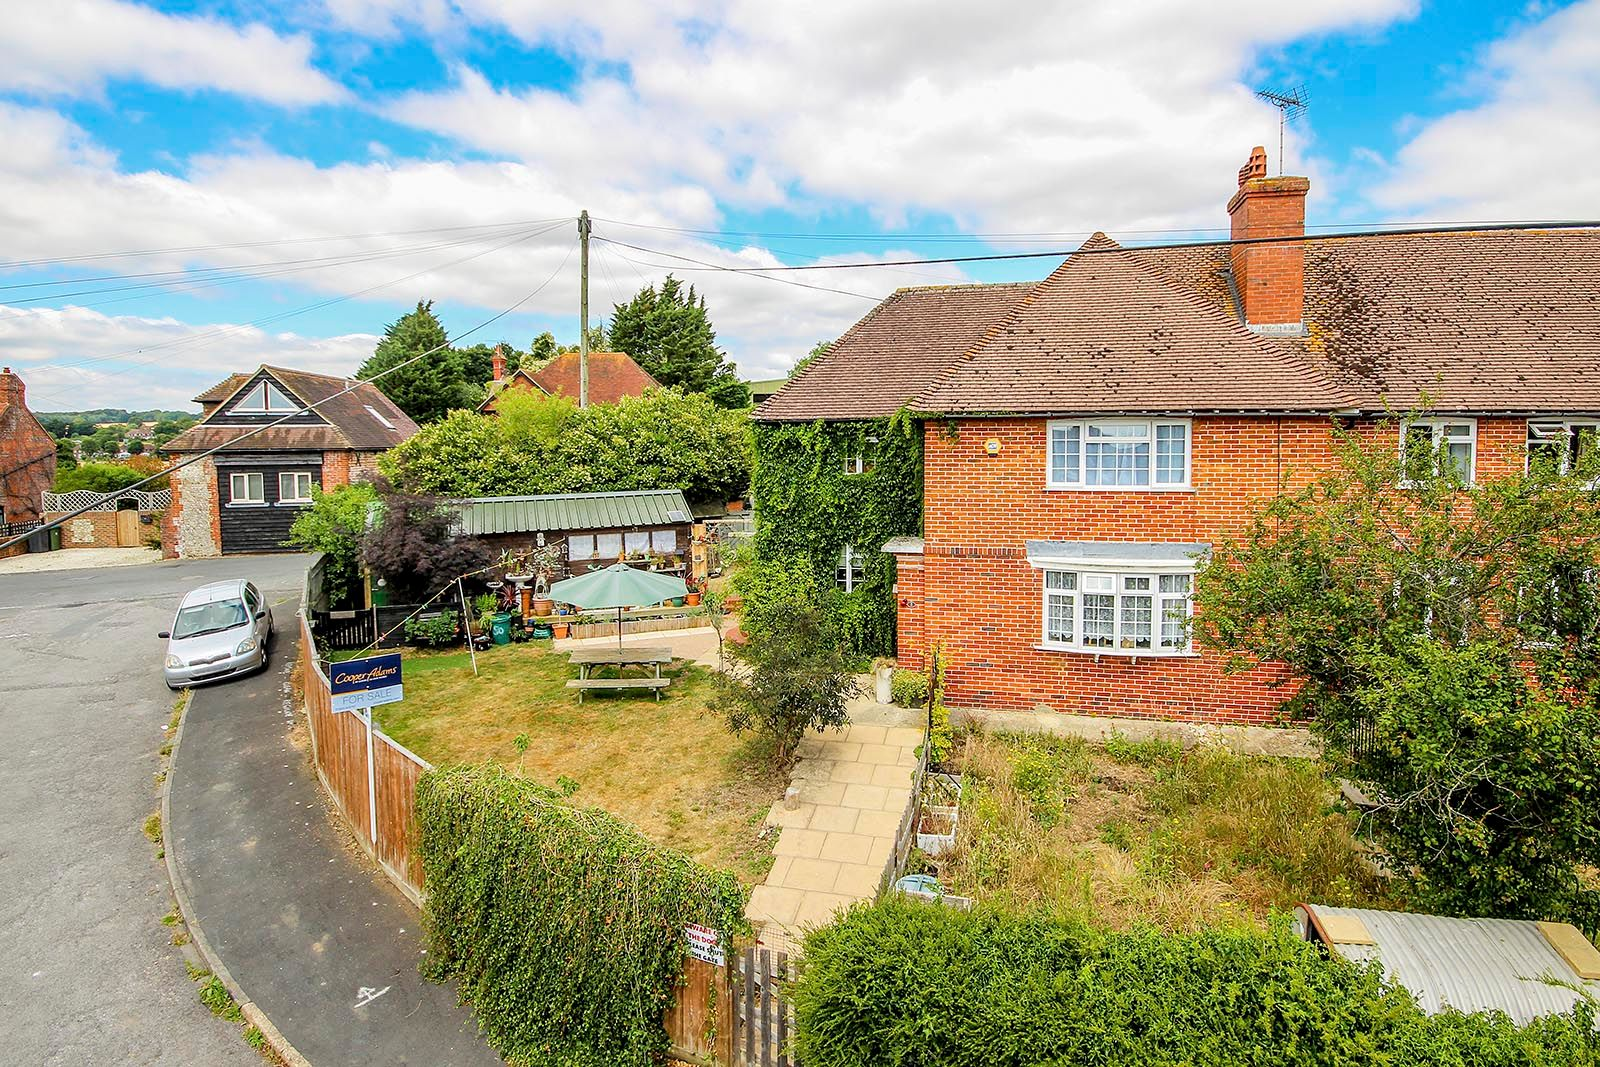 3 bed house for sale in Clapham Common 1